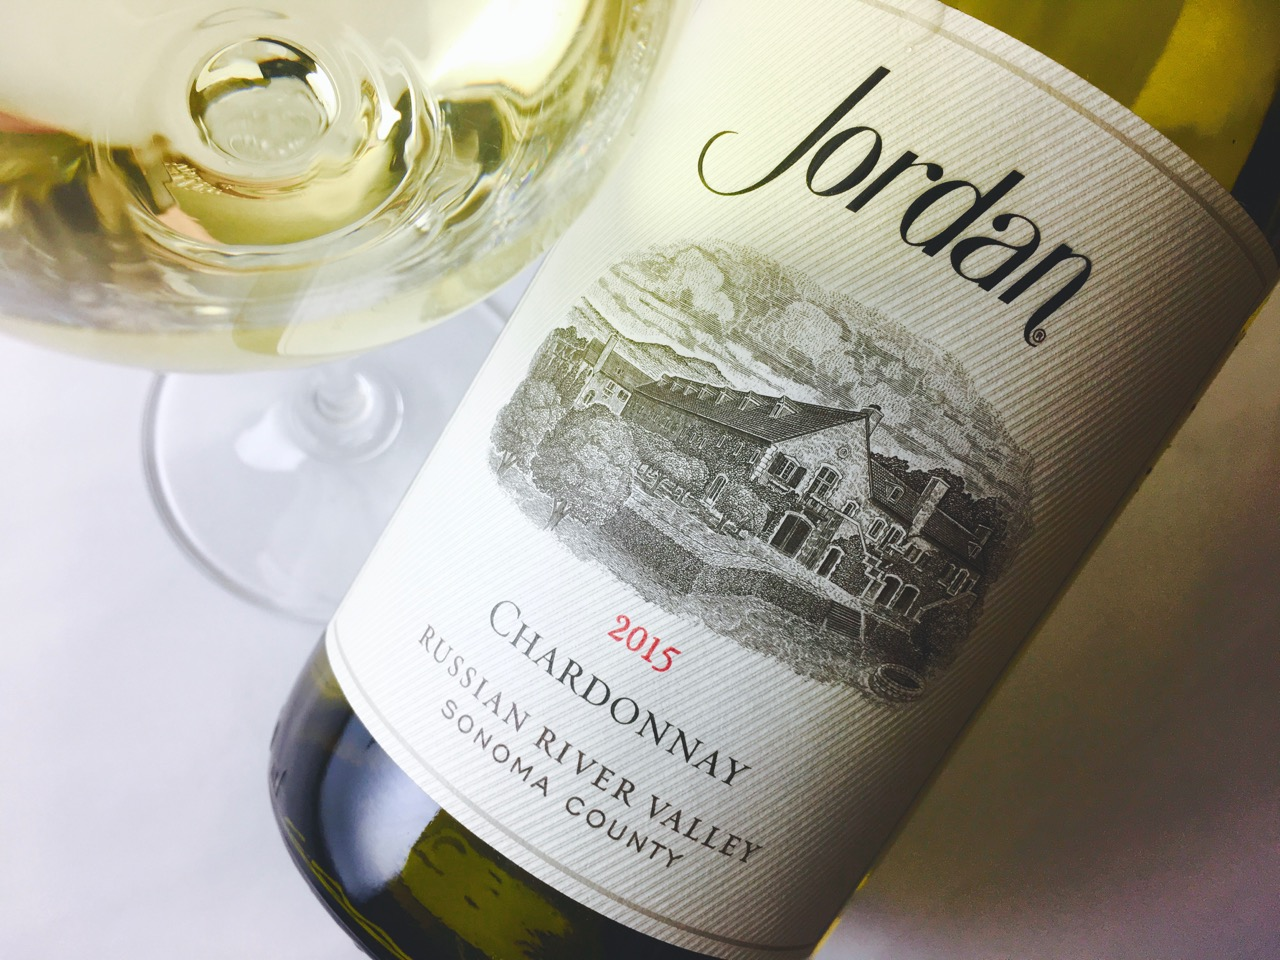 2015 Jordan Chardonnay Russian River Valley